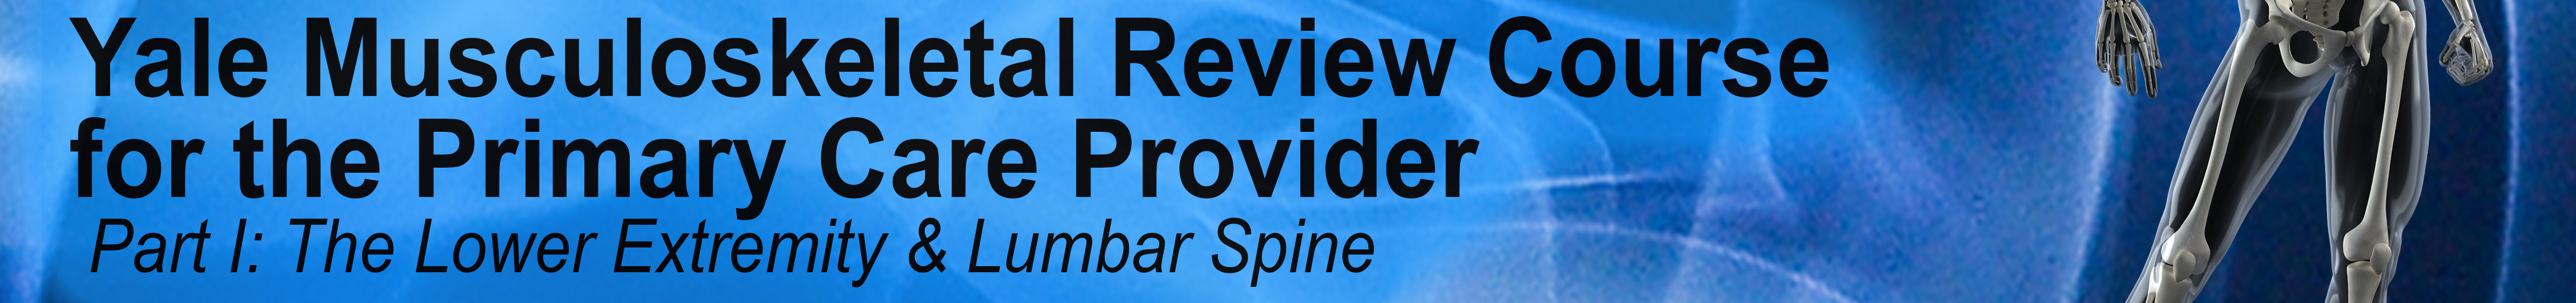 LIVE VIRTUAL WEBINAR: Musculoskeletal Review Course for the Primary Care Provider,  Part I: The Lower Extremity & Lumbar Spine Banner